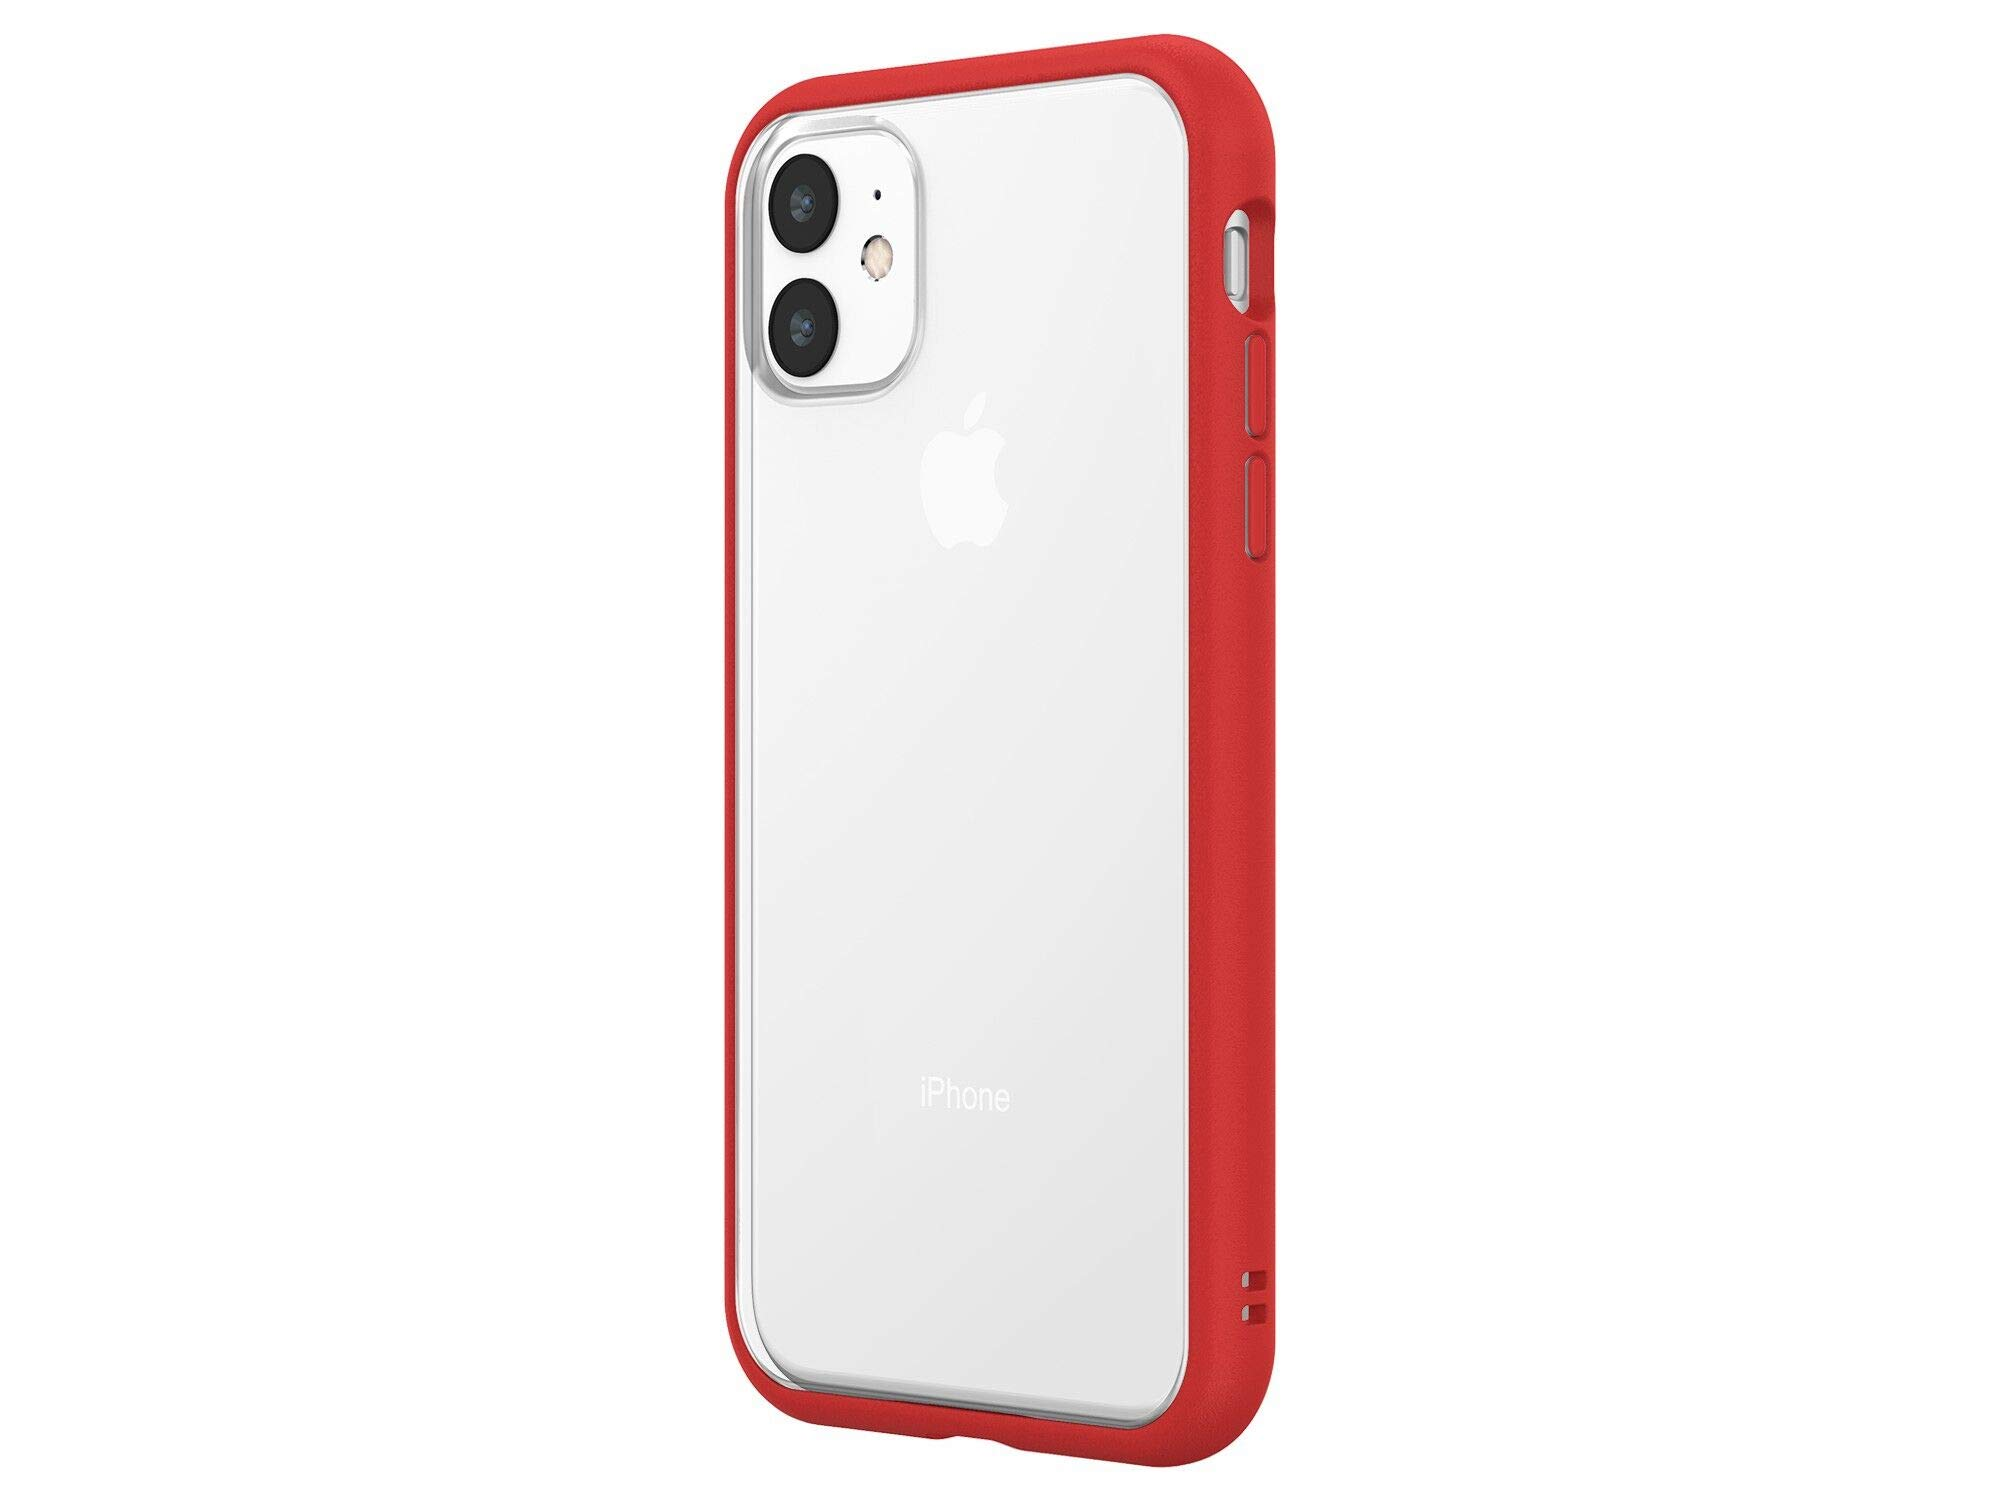 RhinoShield Modular Case Compatible with [iPhone 11] | Mod NX - Customizable Shock Absorbent Heavy Duty Protective Cover - Red